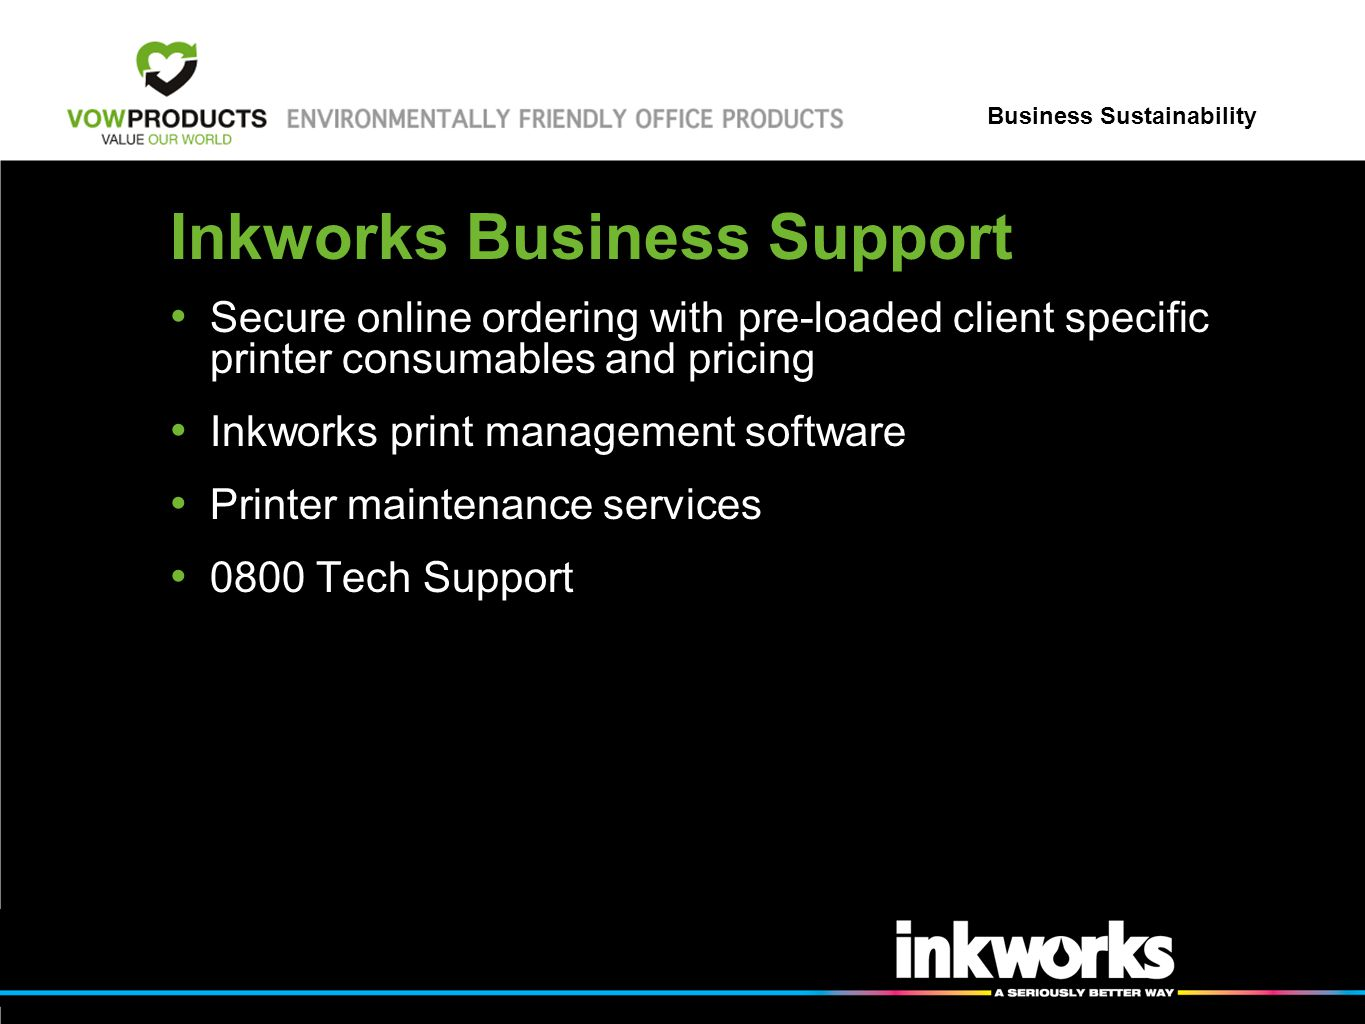 Business Sustainability Inkworks Business Support Secure online ordering with pre-loaded client specific printer consumables and pricing Inkworks print management software Printer maintenance services 0800 Tech Support